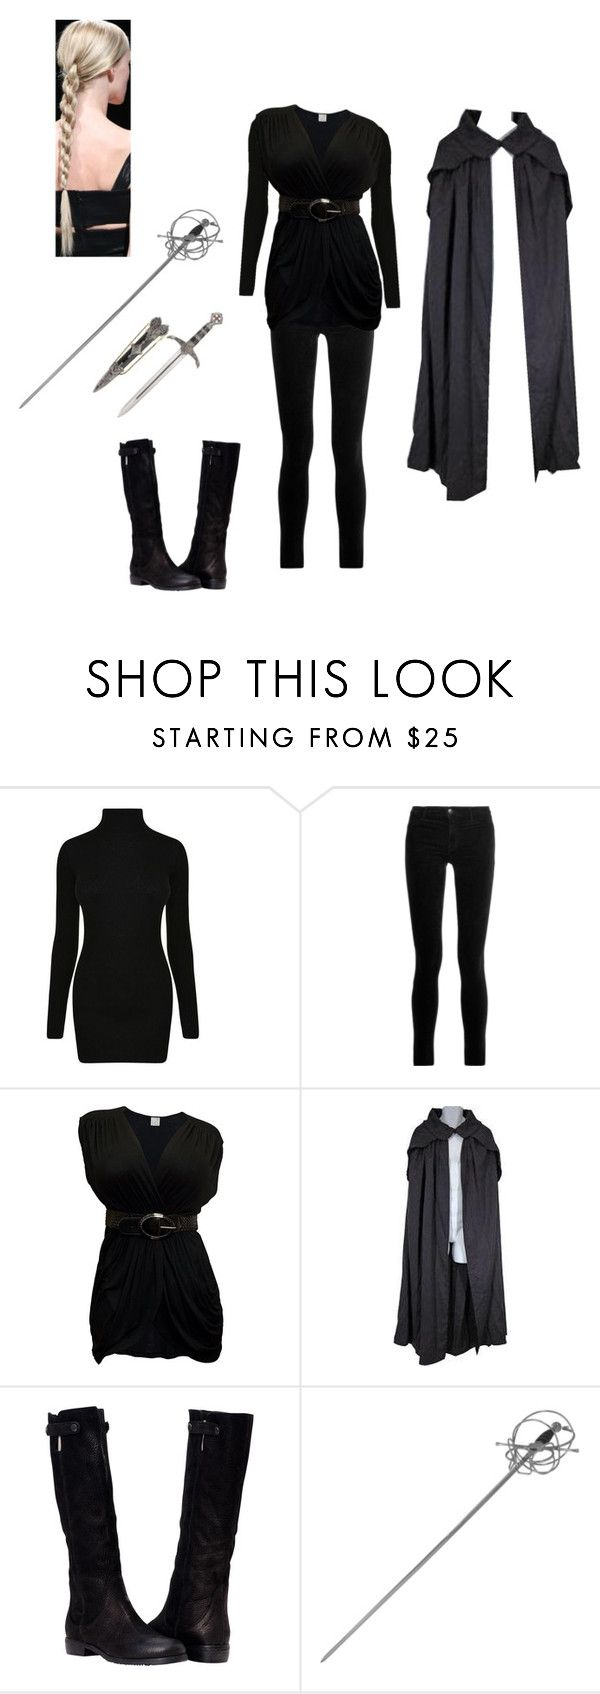 """""""The Darkness Within"""" by snowywolf ❤ liked on Polyvore featuring Helmut Lang, J Brand, Whetstone Cutlery and CO"""